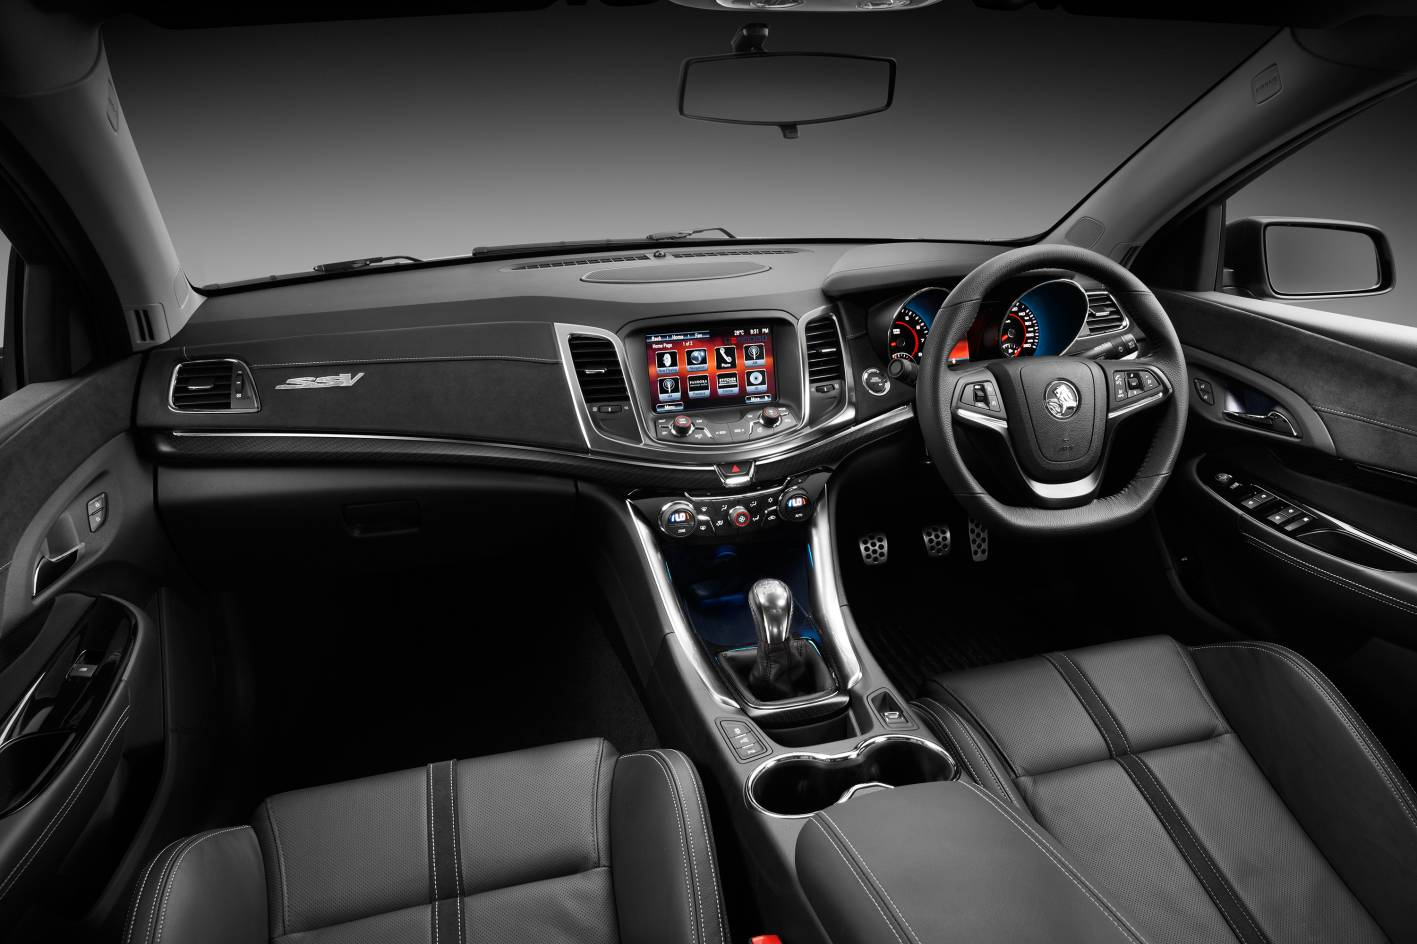 2013-Holden-VF-Commodore-SS-V-Interior-1.jpg